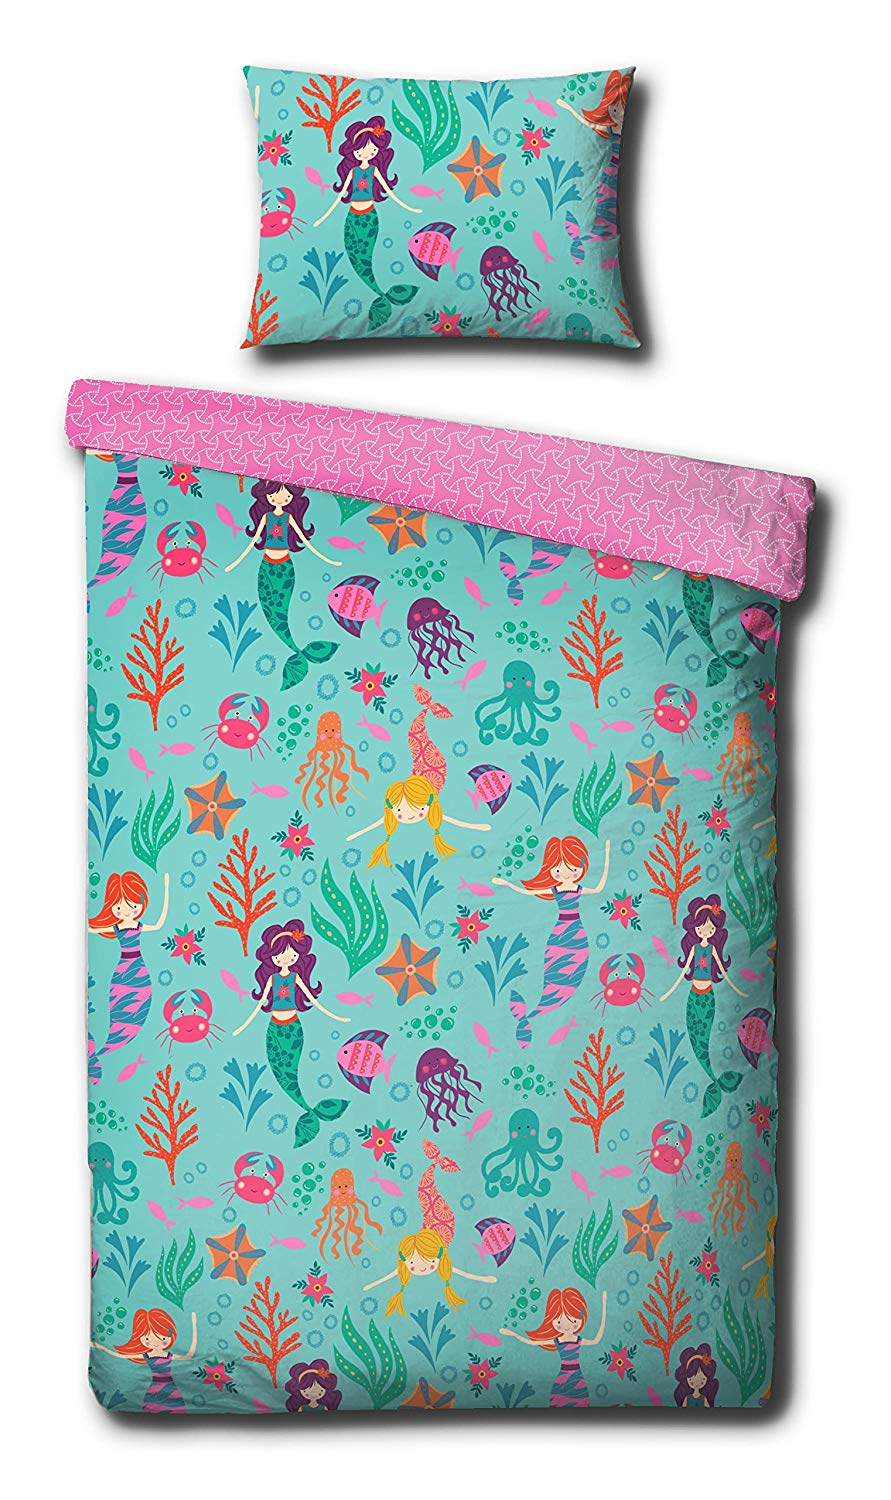 Junior Bedding Mermaid Single Duvet